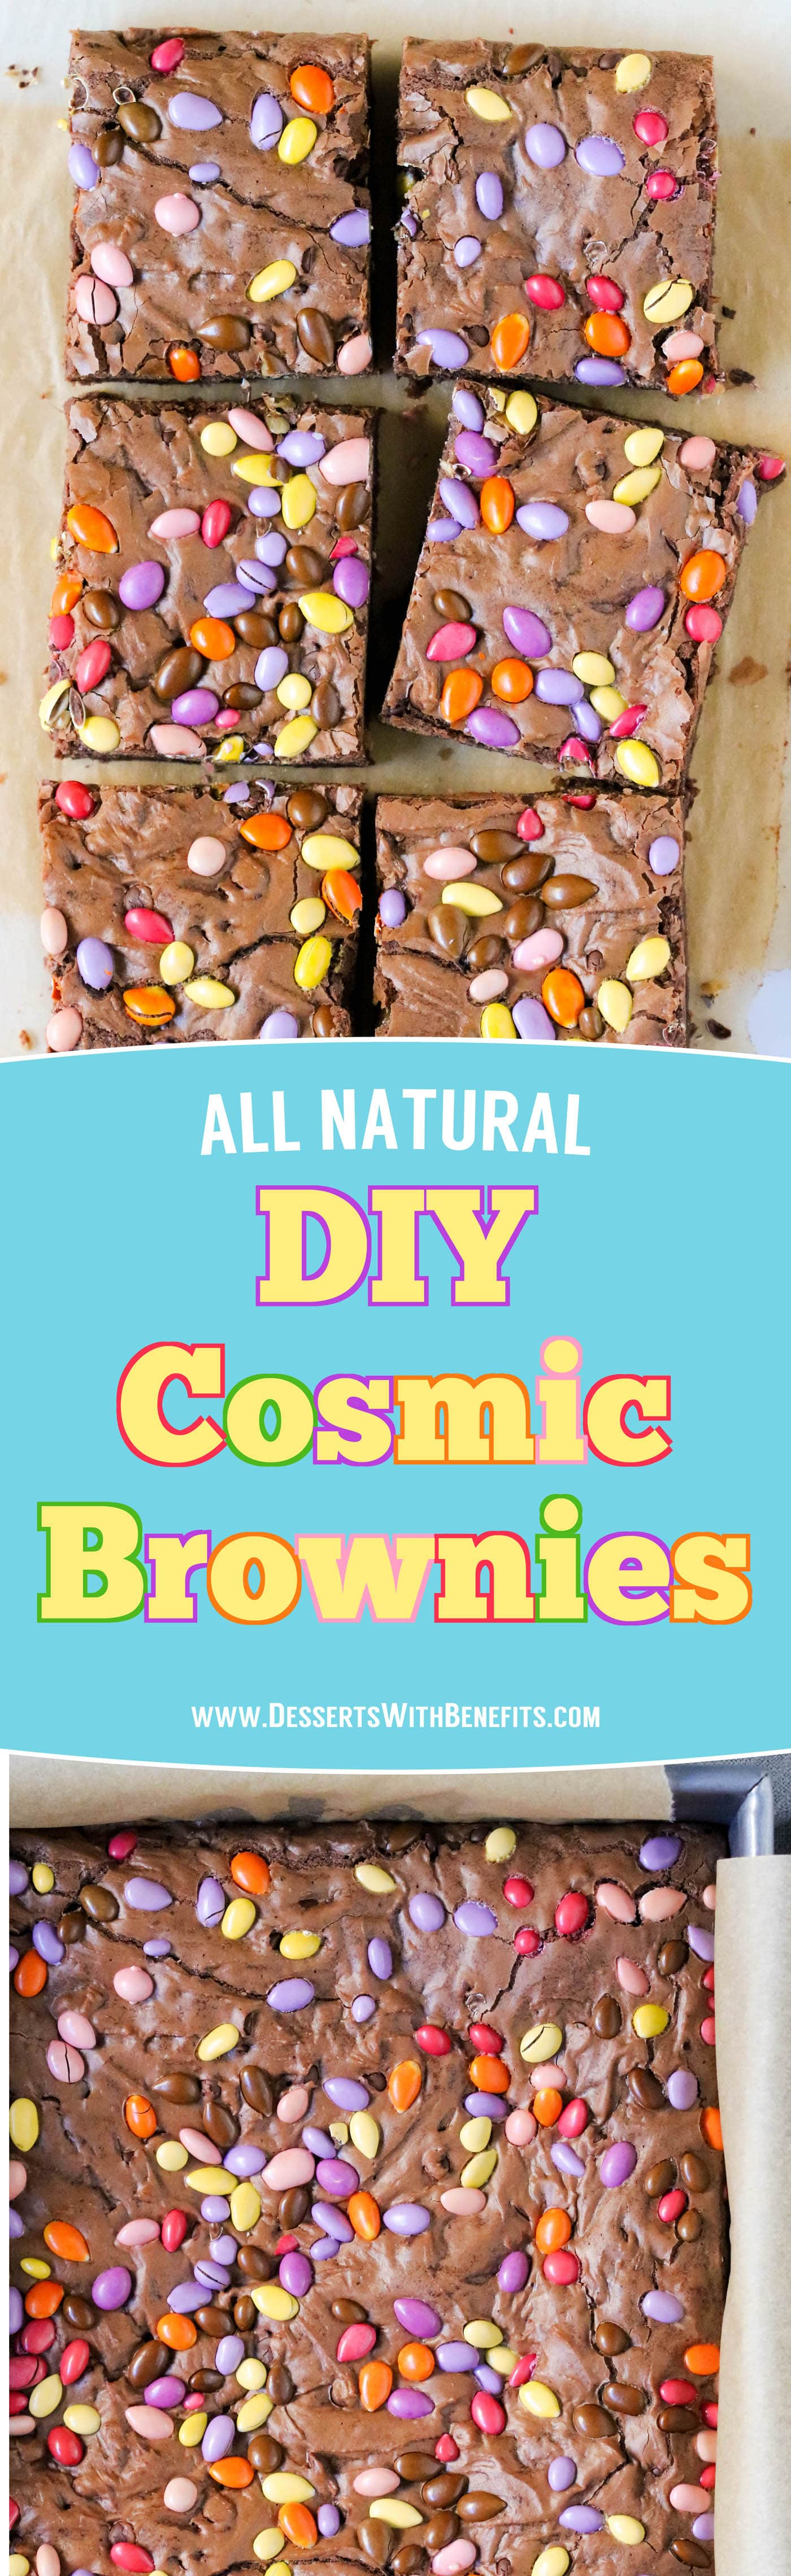 These all natural Homemade Cosmic Brownies are dense, fudgy, chewy, and made with just 4 ingredients! It's hard to believe this easy recipe is better for you than the storebought version -- no preservatives or artificial ingredients whatsoever!